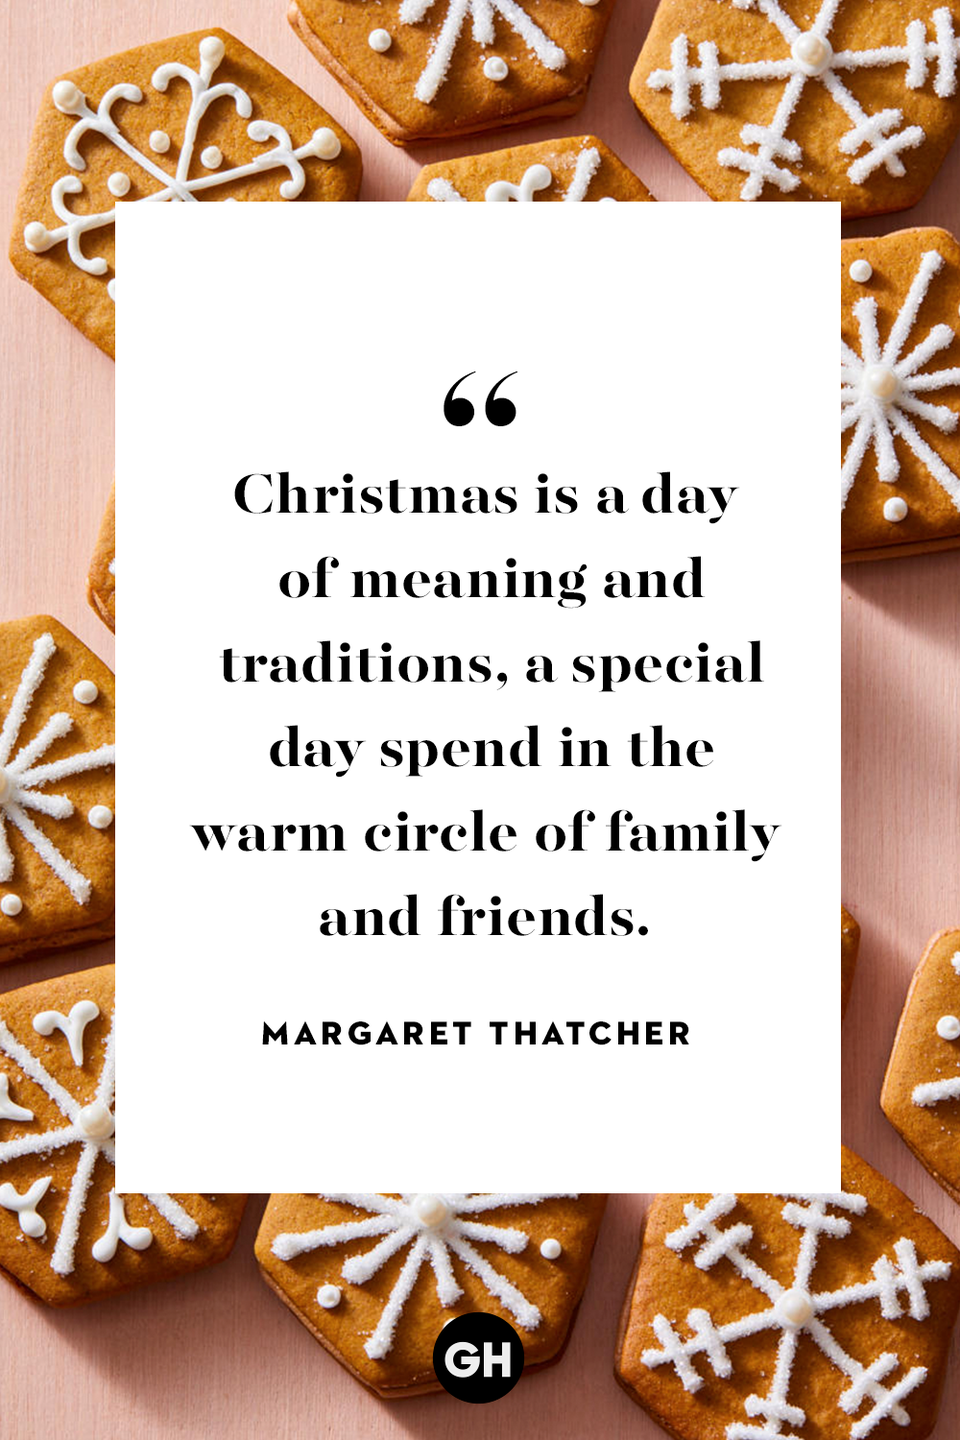 <p>Christmas is a day of meaning and traditions, a special day to spend in the warm circle of family and friends. </p>